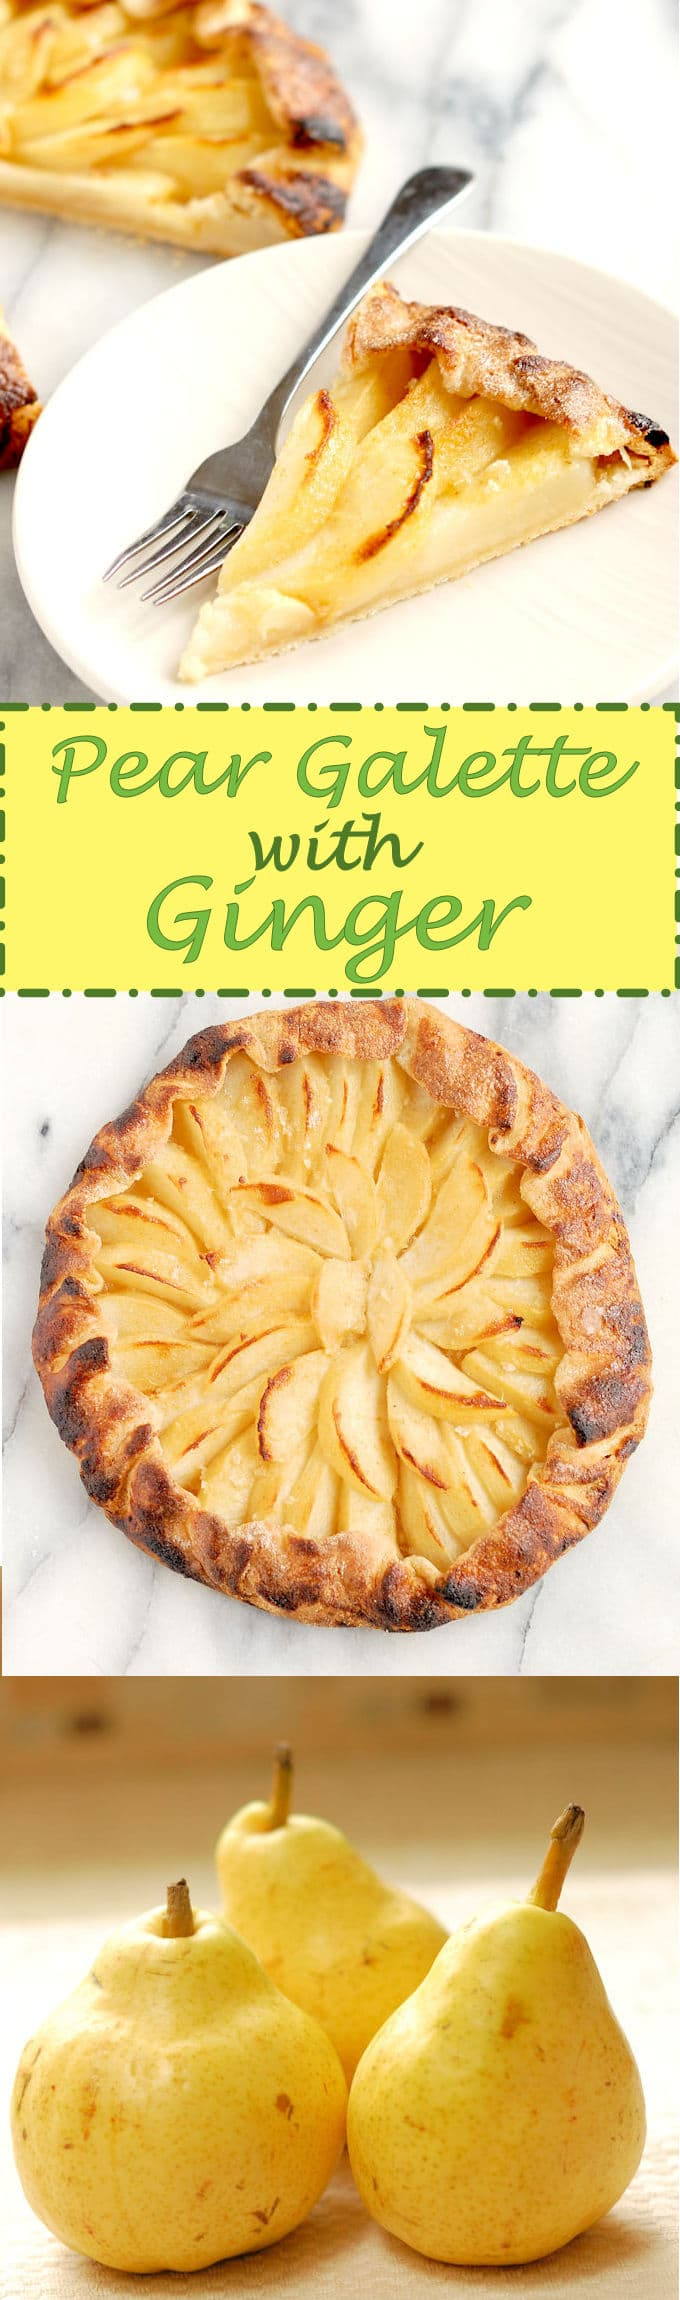 Simple to make yet so tasty with a hint of ginger.